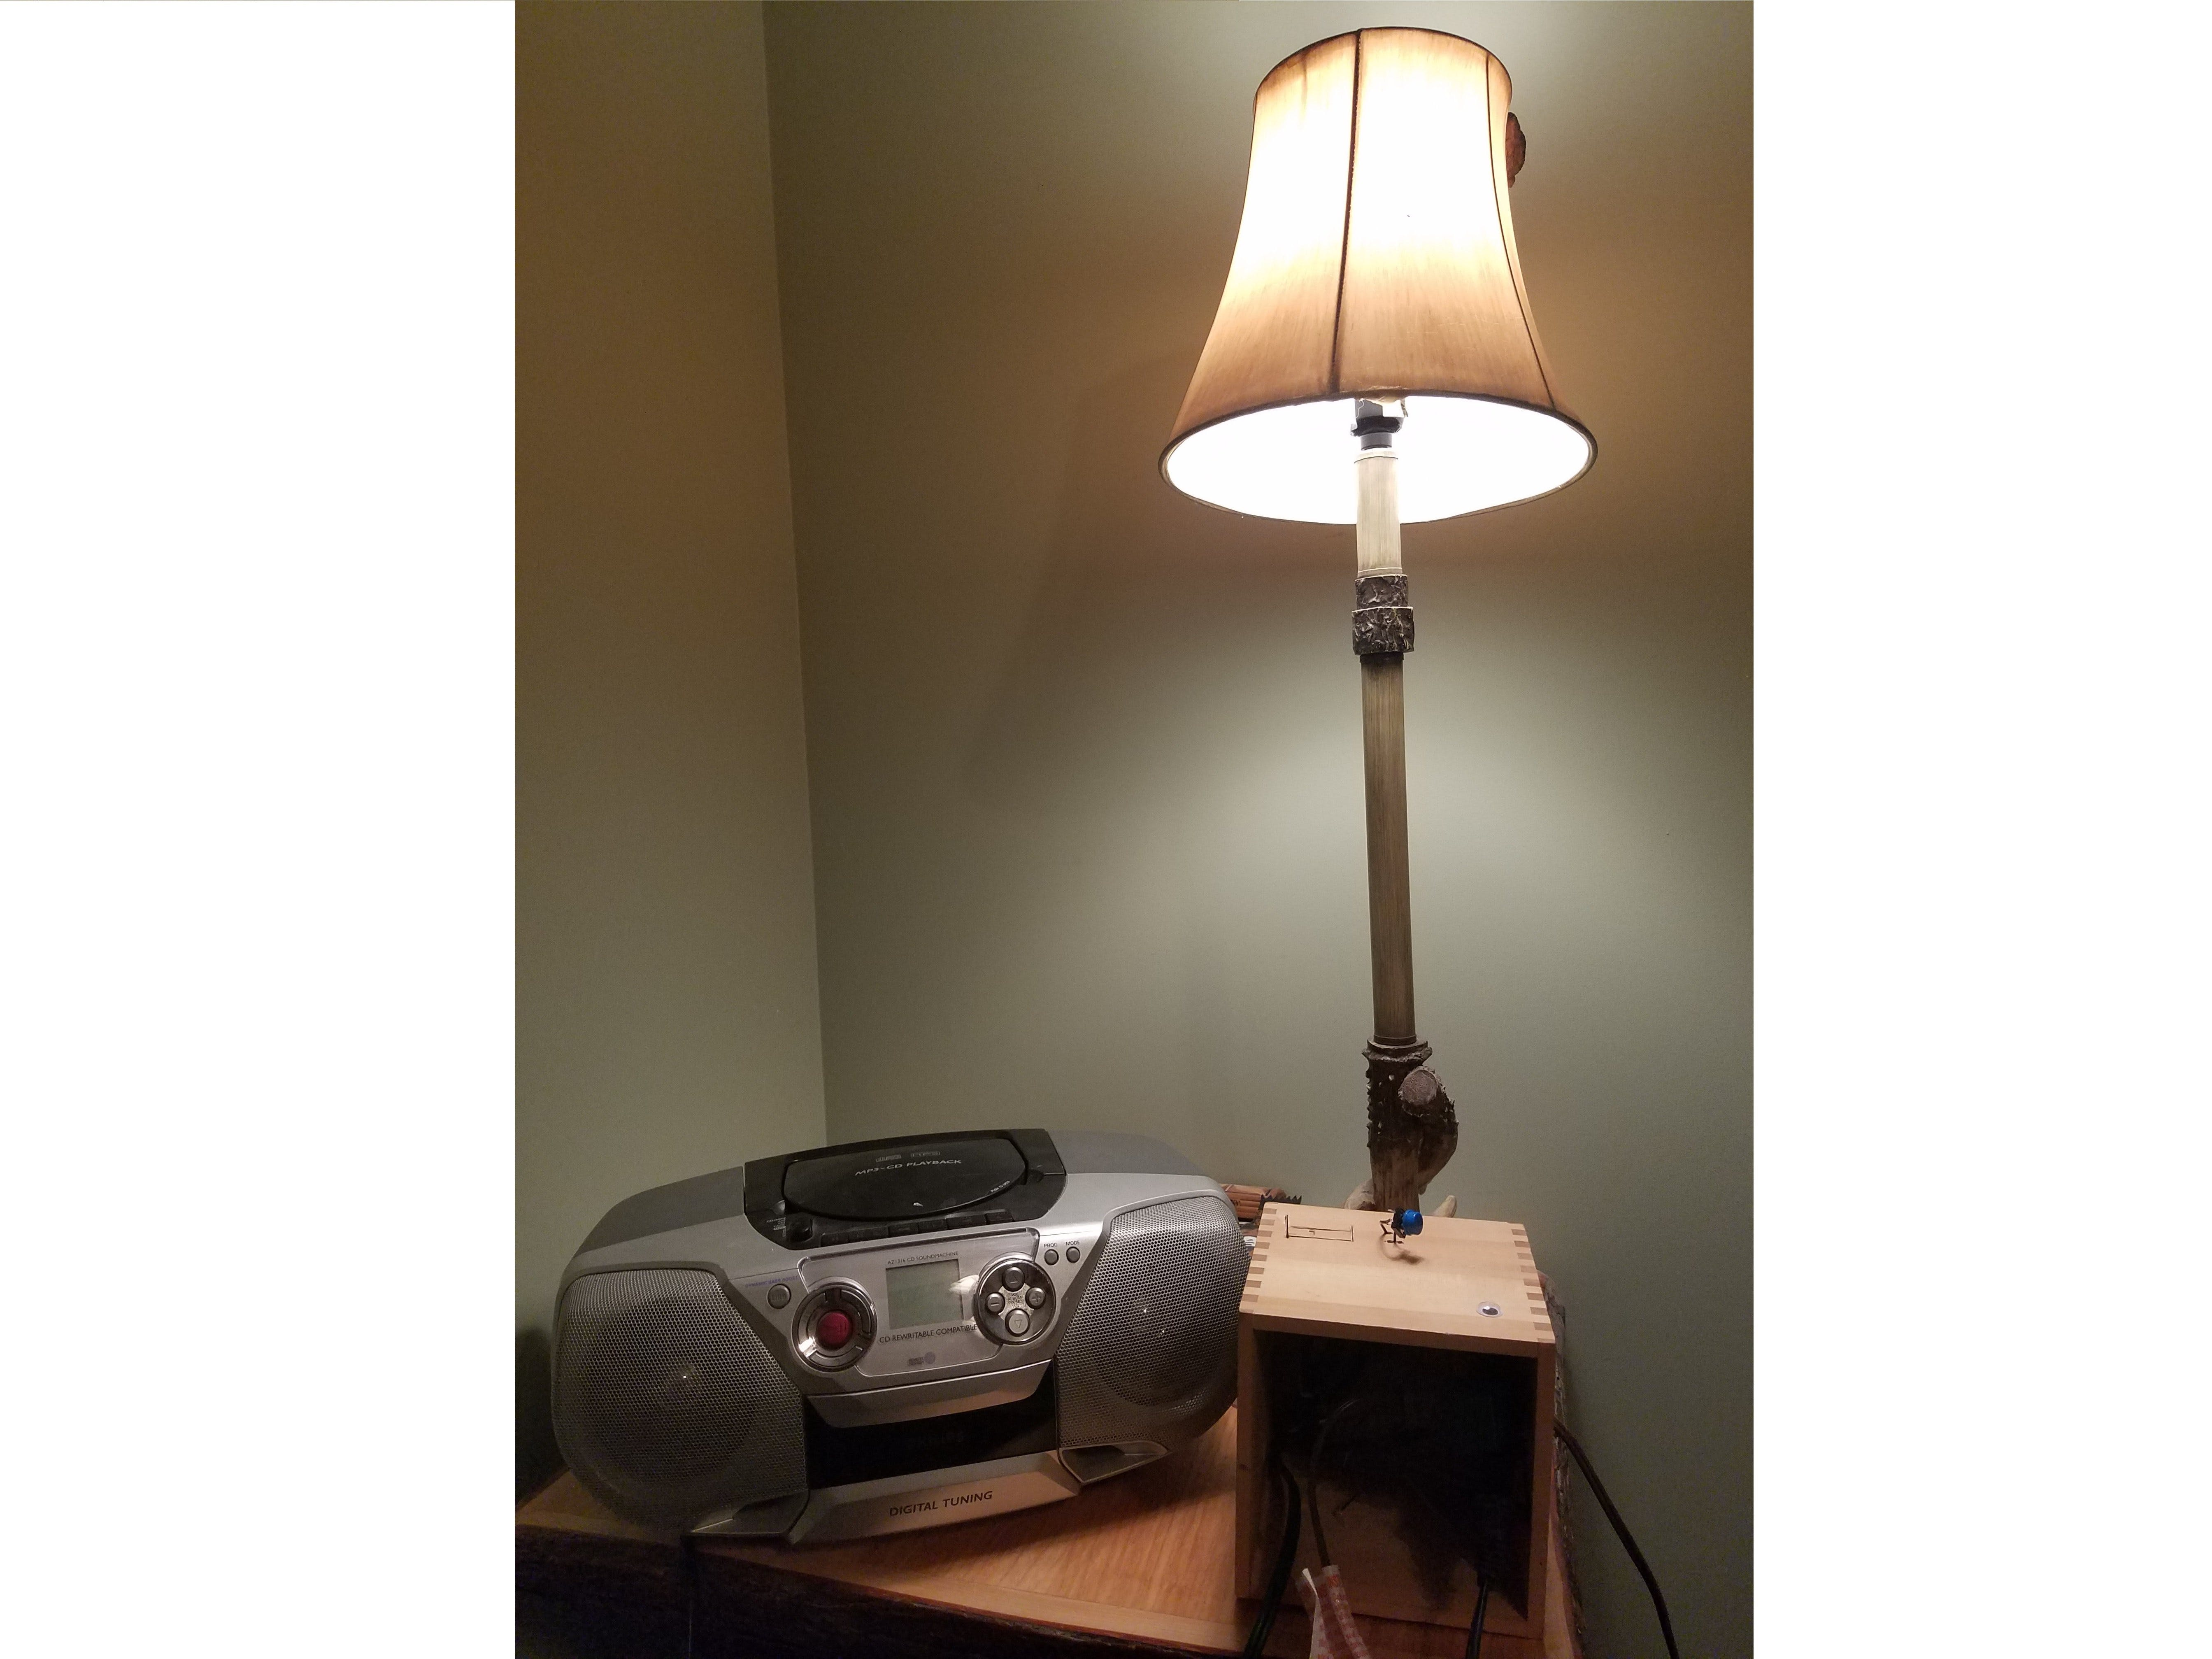 Lane Tech HS - PCL - Lamp And Radio Alarm